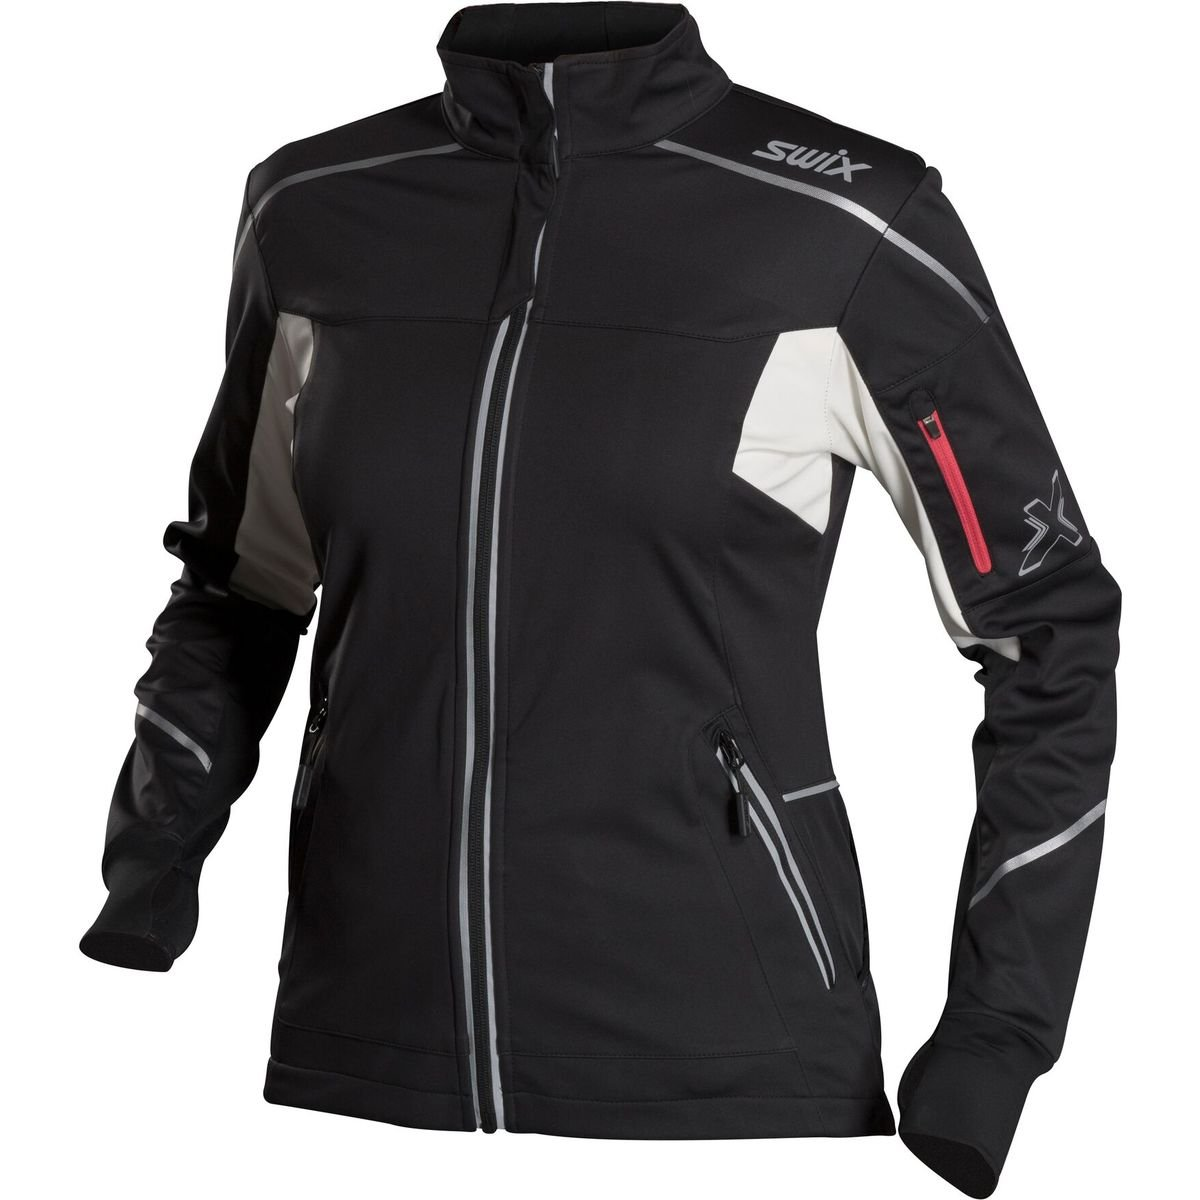 Swix Delda Light Softshell Jacket - Women's Black, L